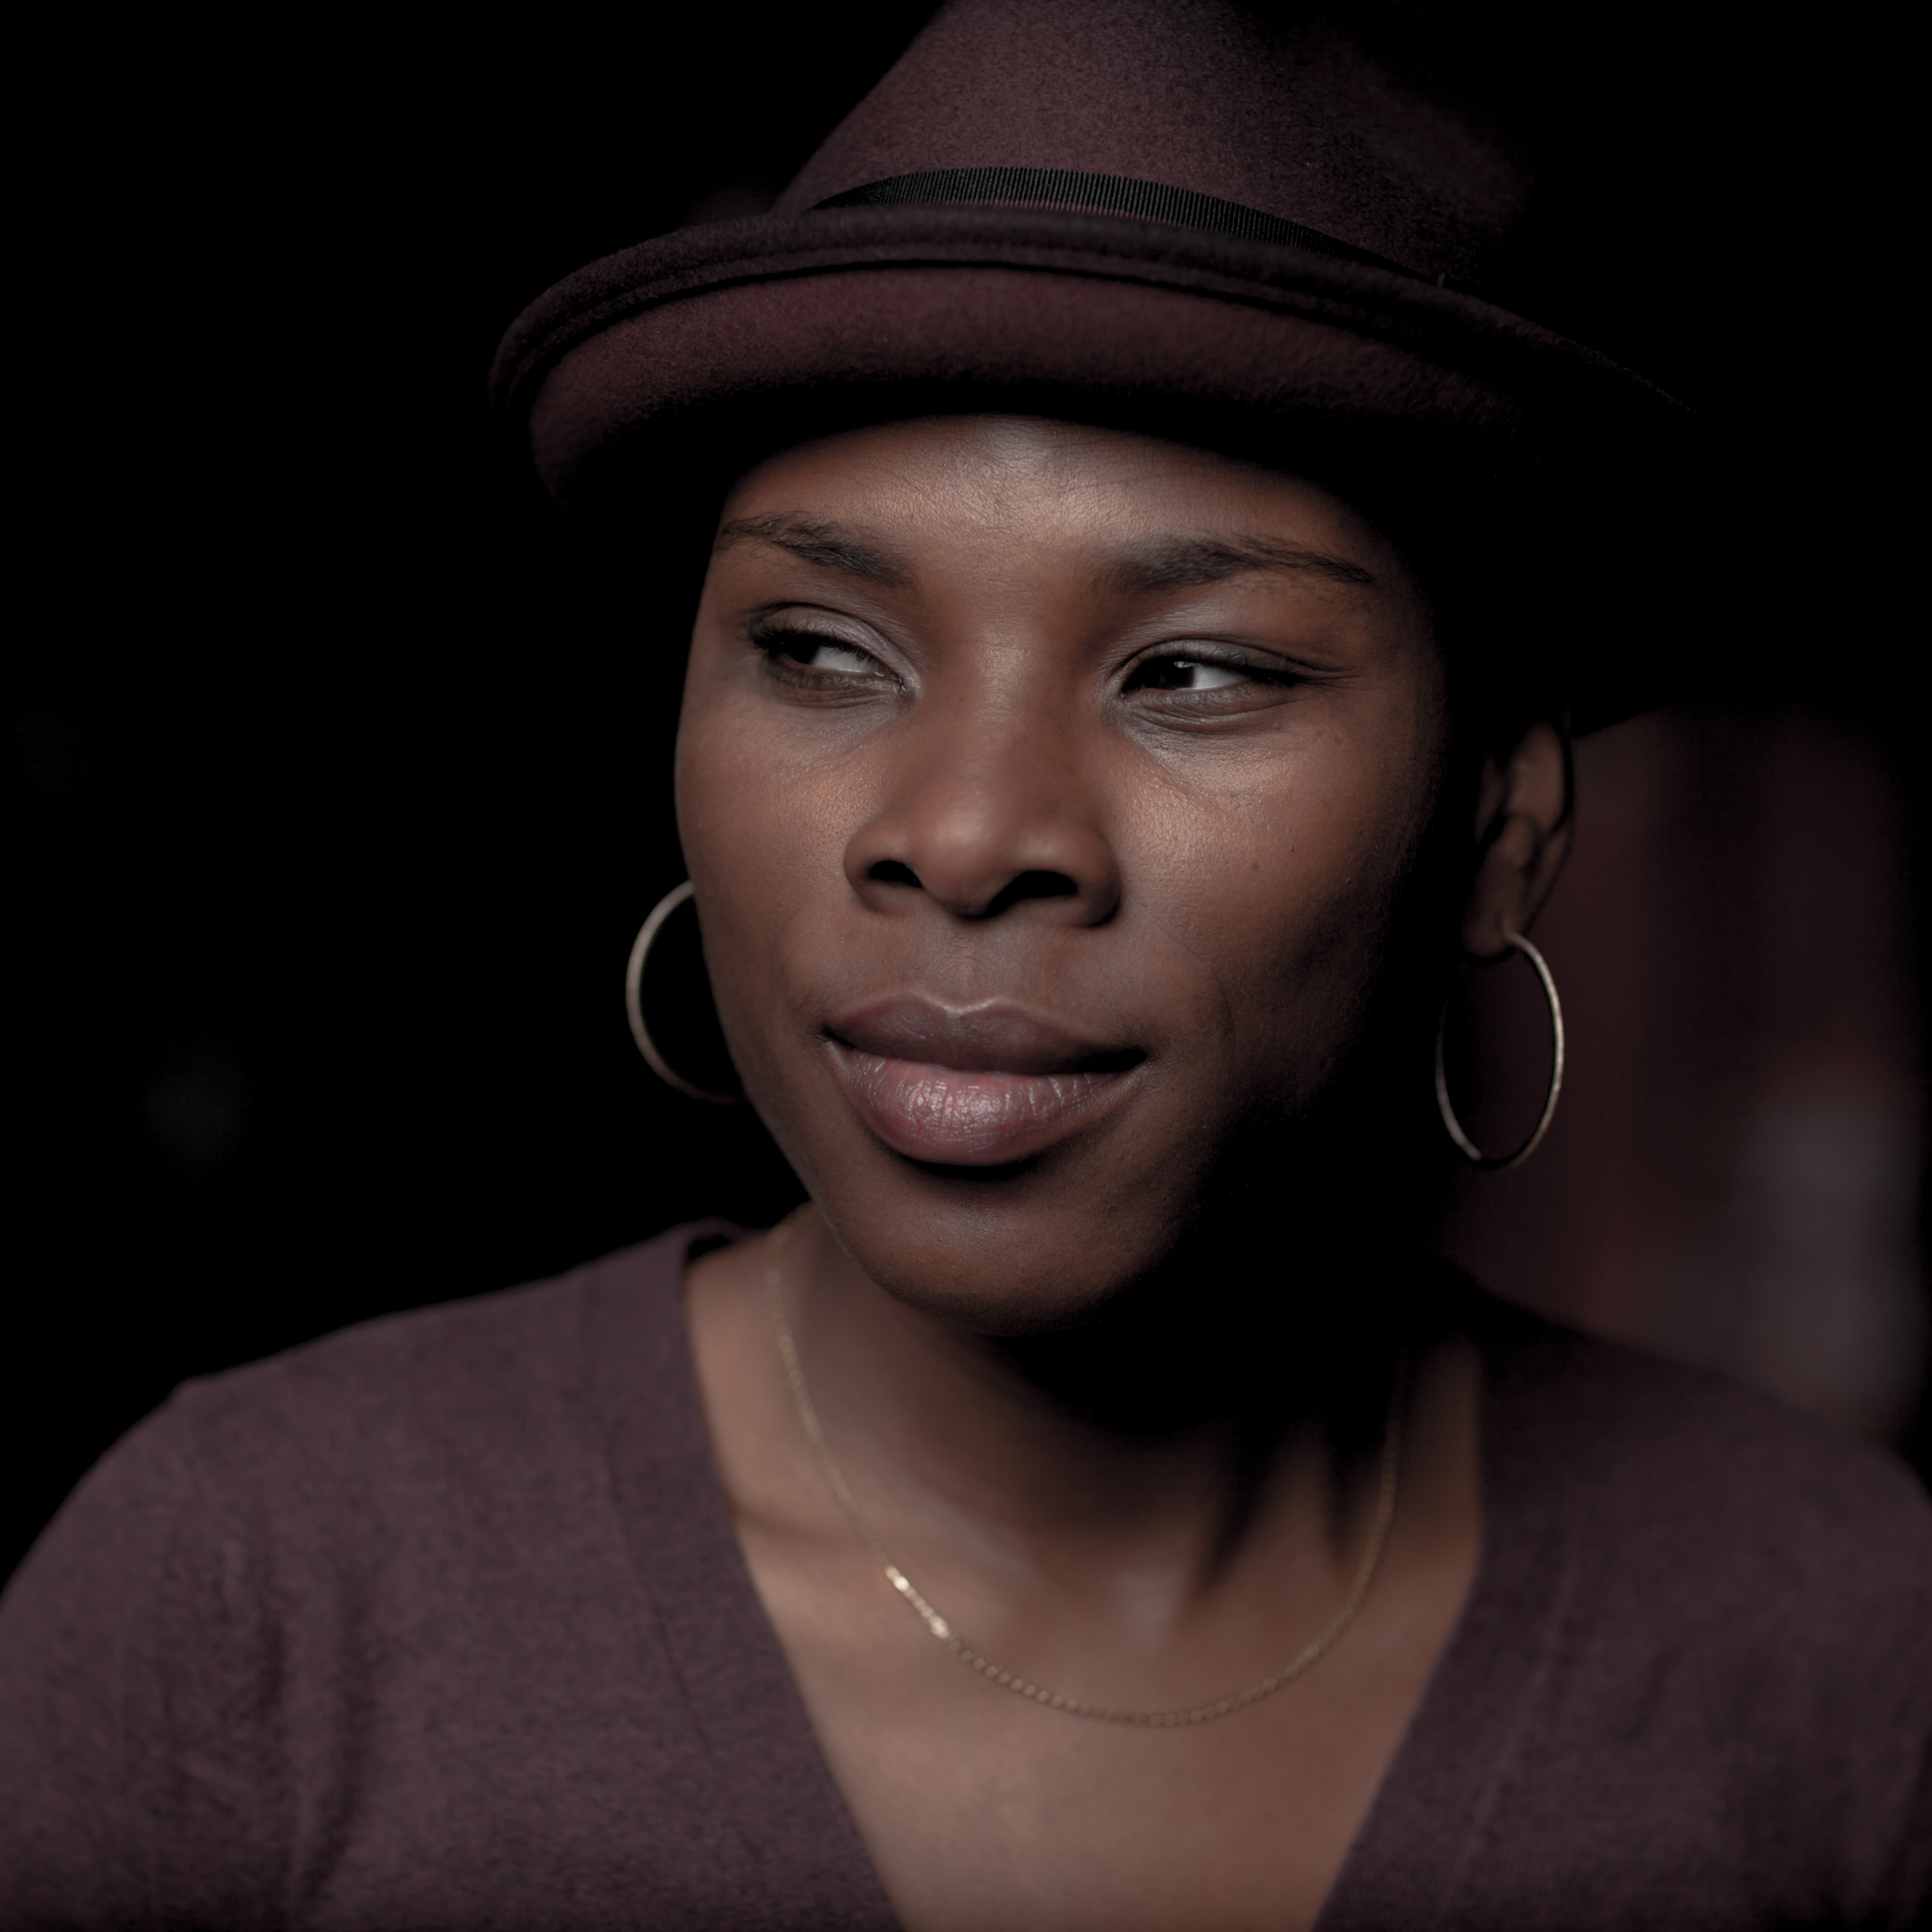 Luvvie Ajayi | Social Media Expert, NY Times Best-Selling Author, Pop-Culture Critic